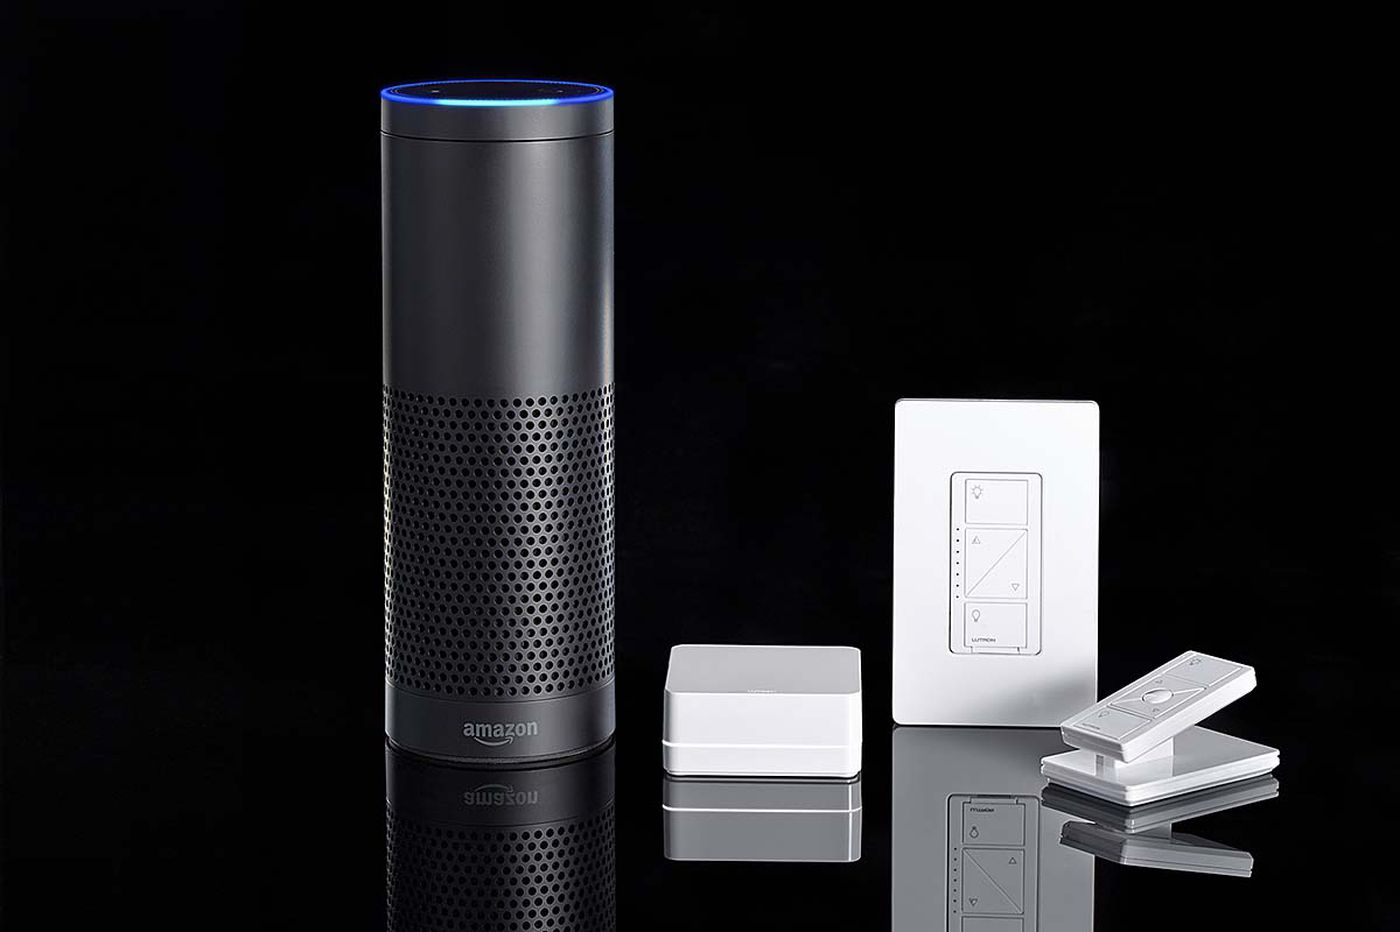 Lutron pairs wireless devices with Amazon Echo